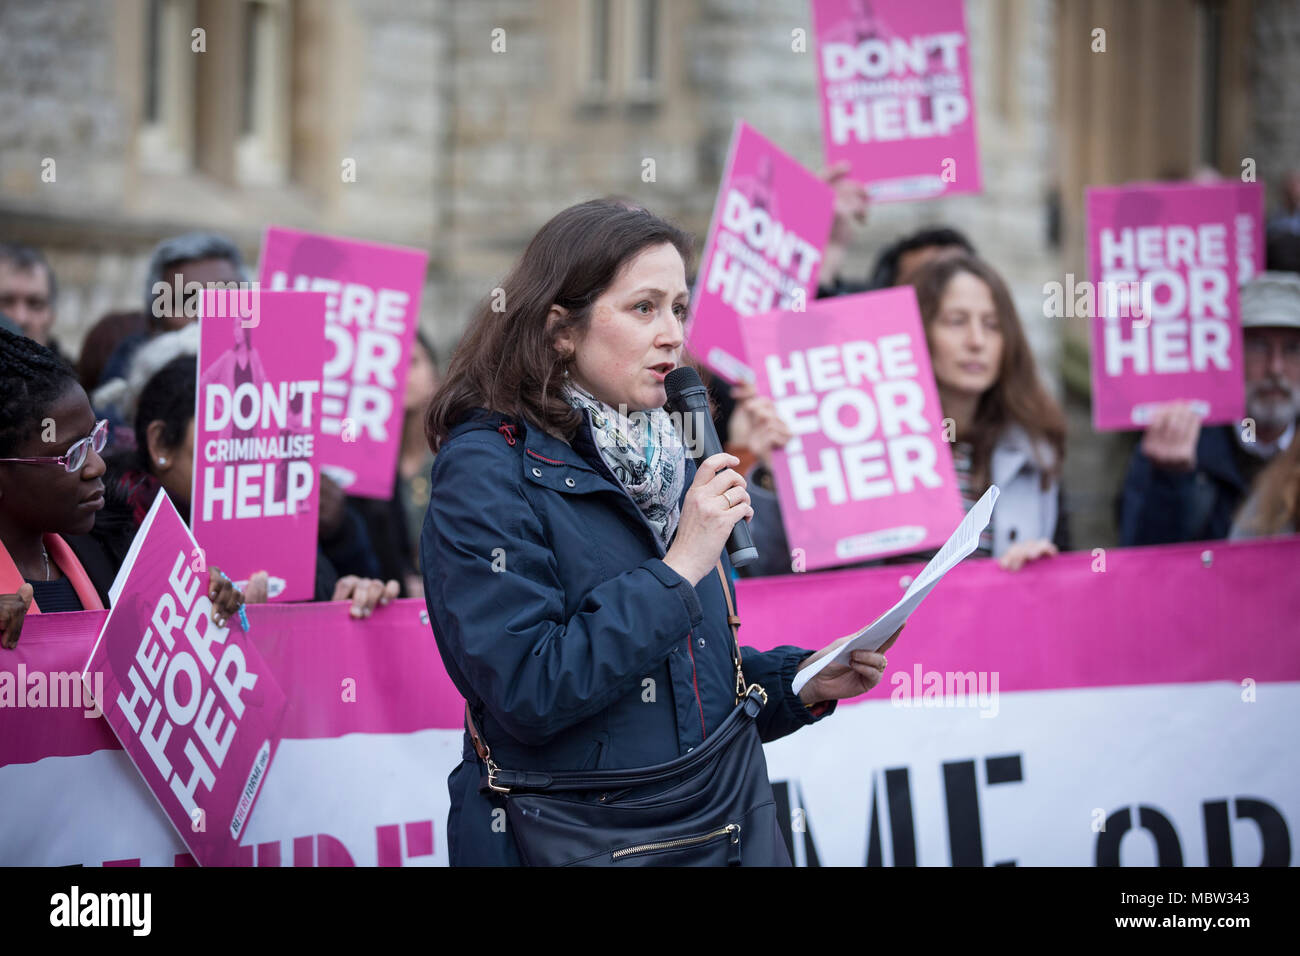 Pro-life campaigners demonstrate outside Ealing Broadway Town Hall before the abortion buffer zone vote this week, London, UK - Stock Image